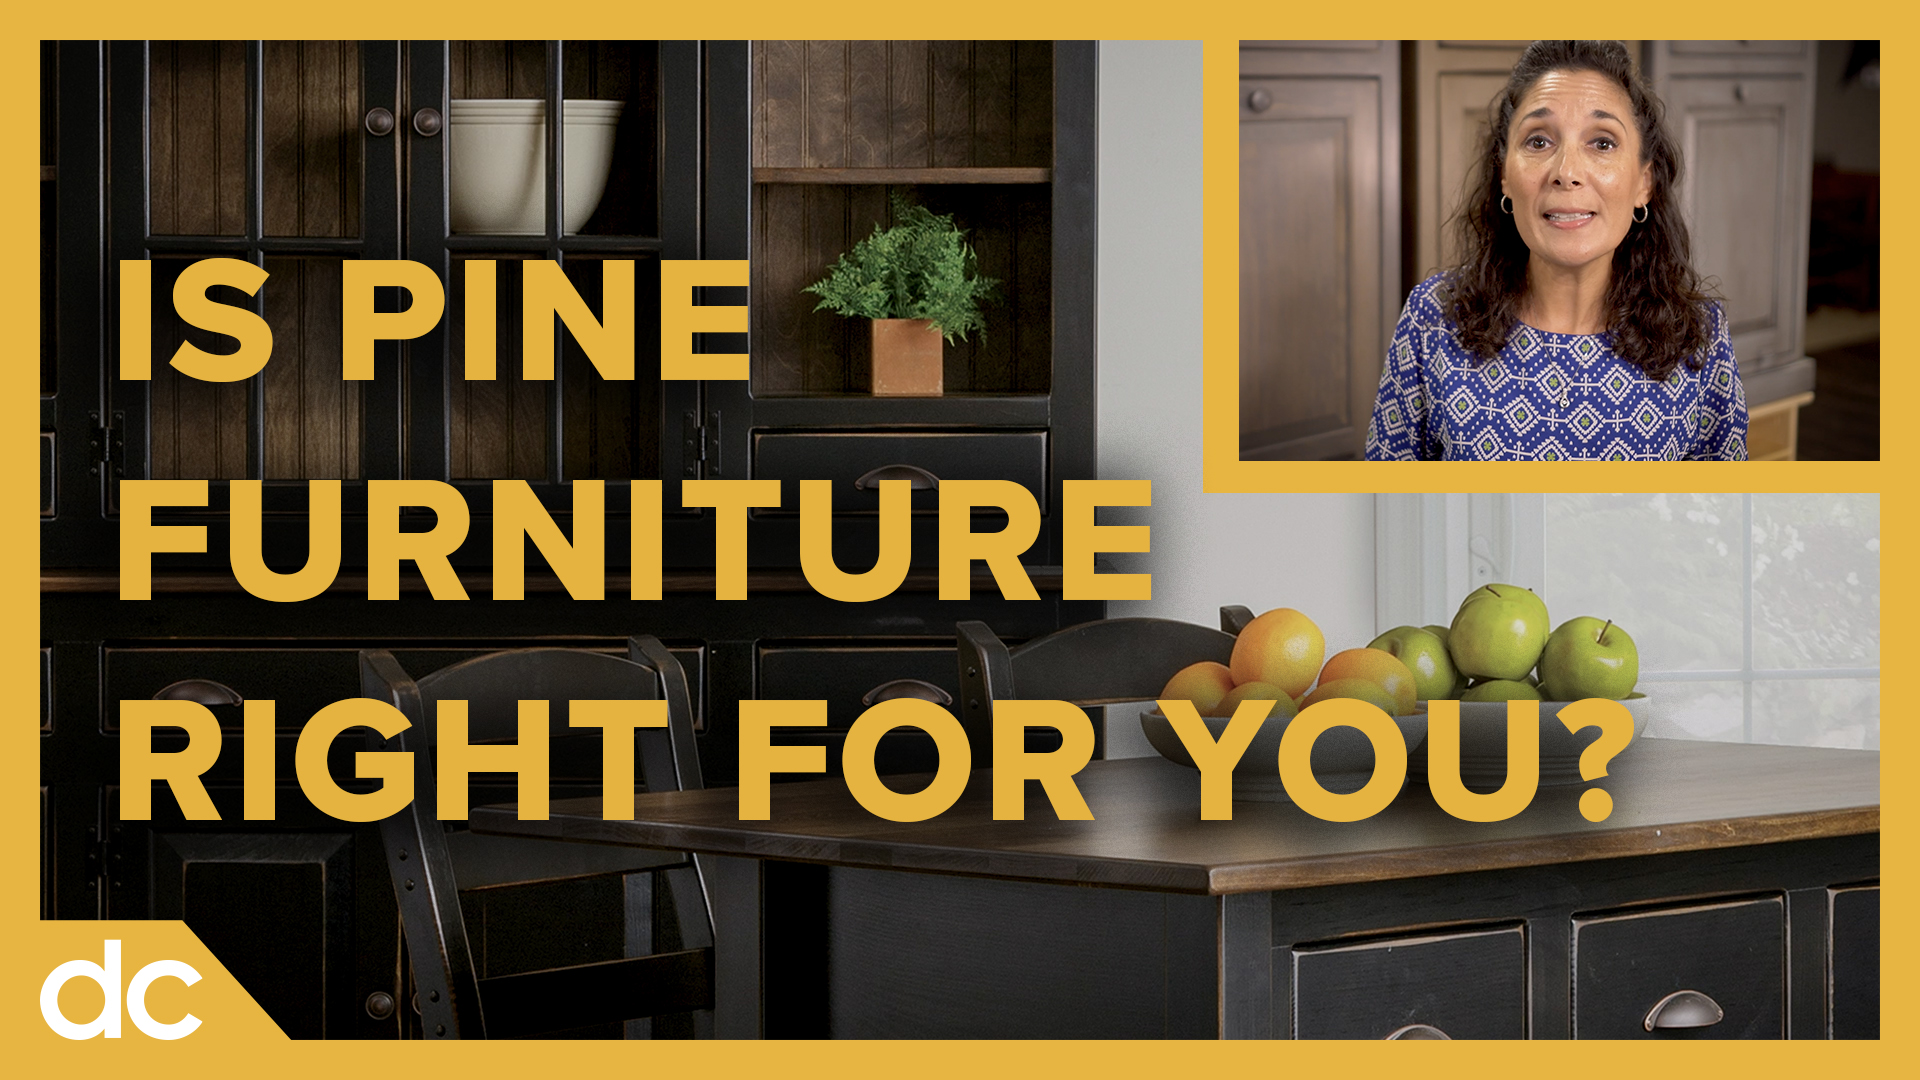 is pine furniture right for you?